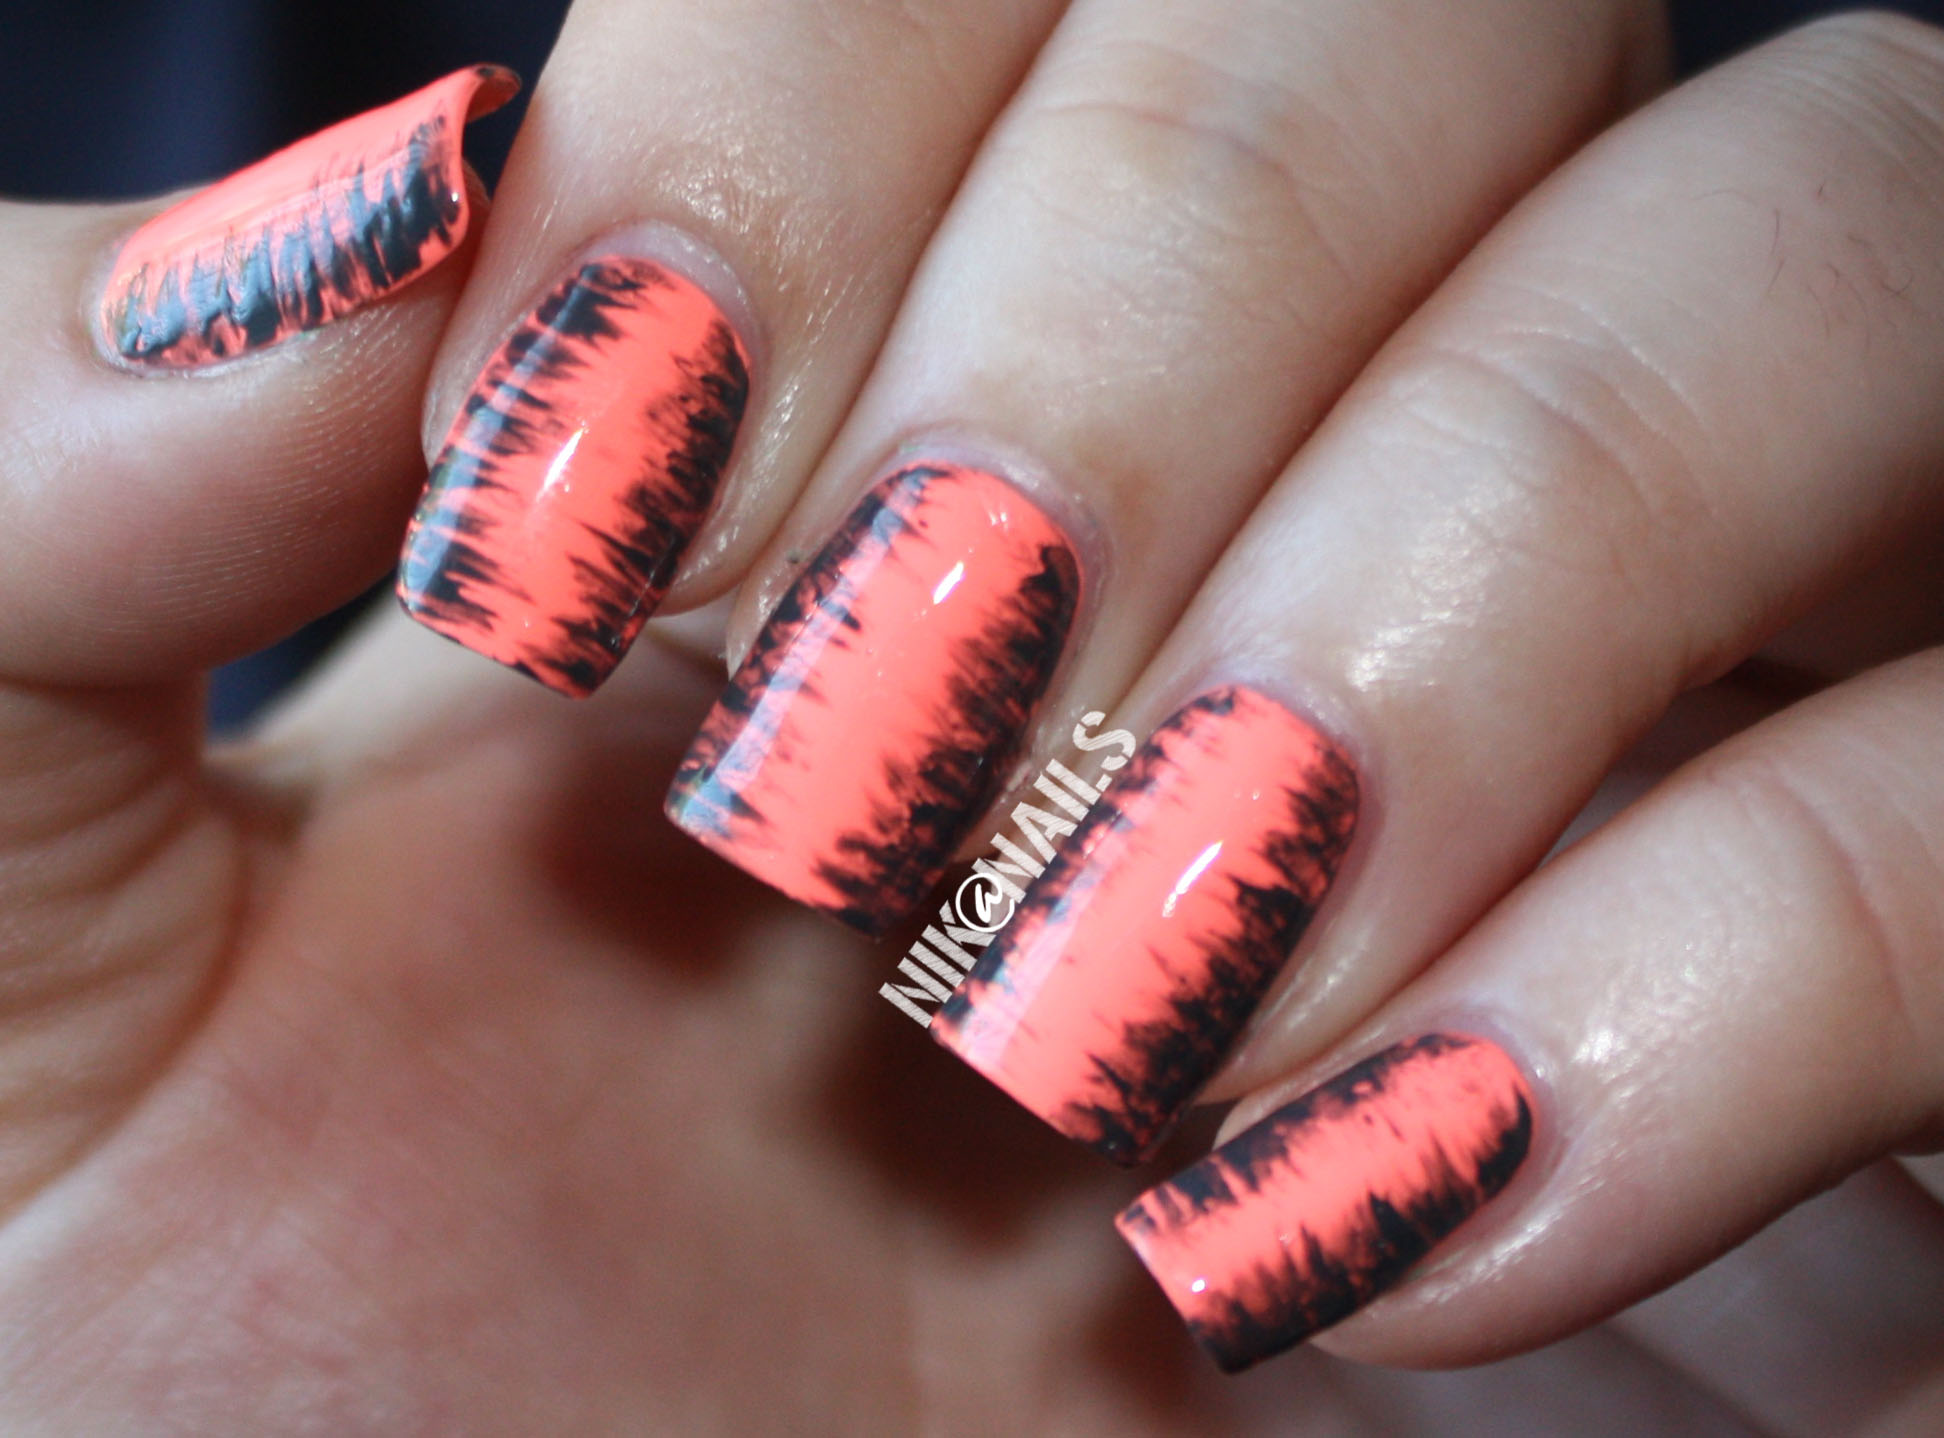 April Nail Art Challenge Day 9 Nailspiration Niknails